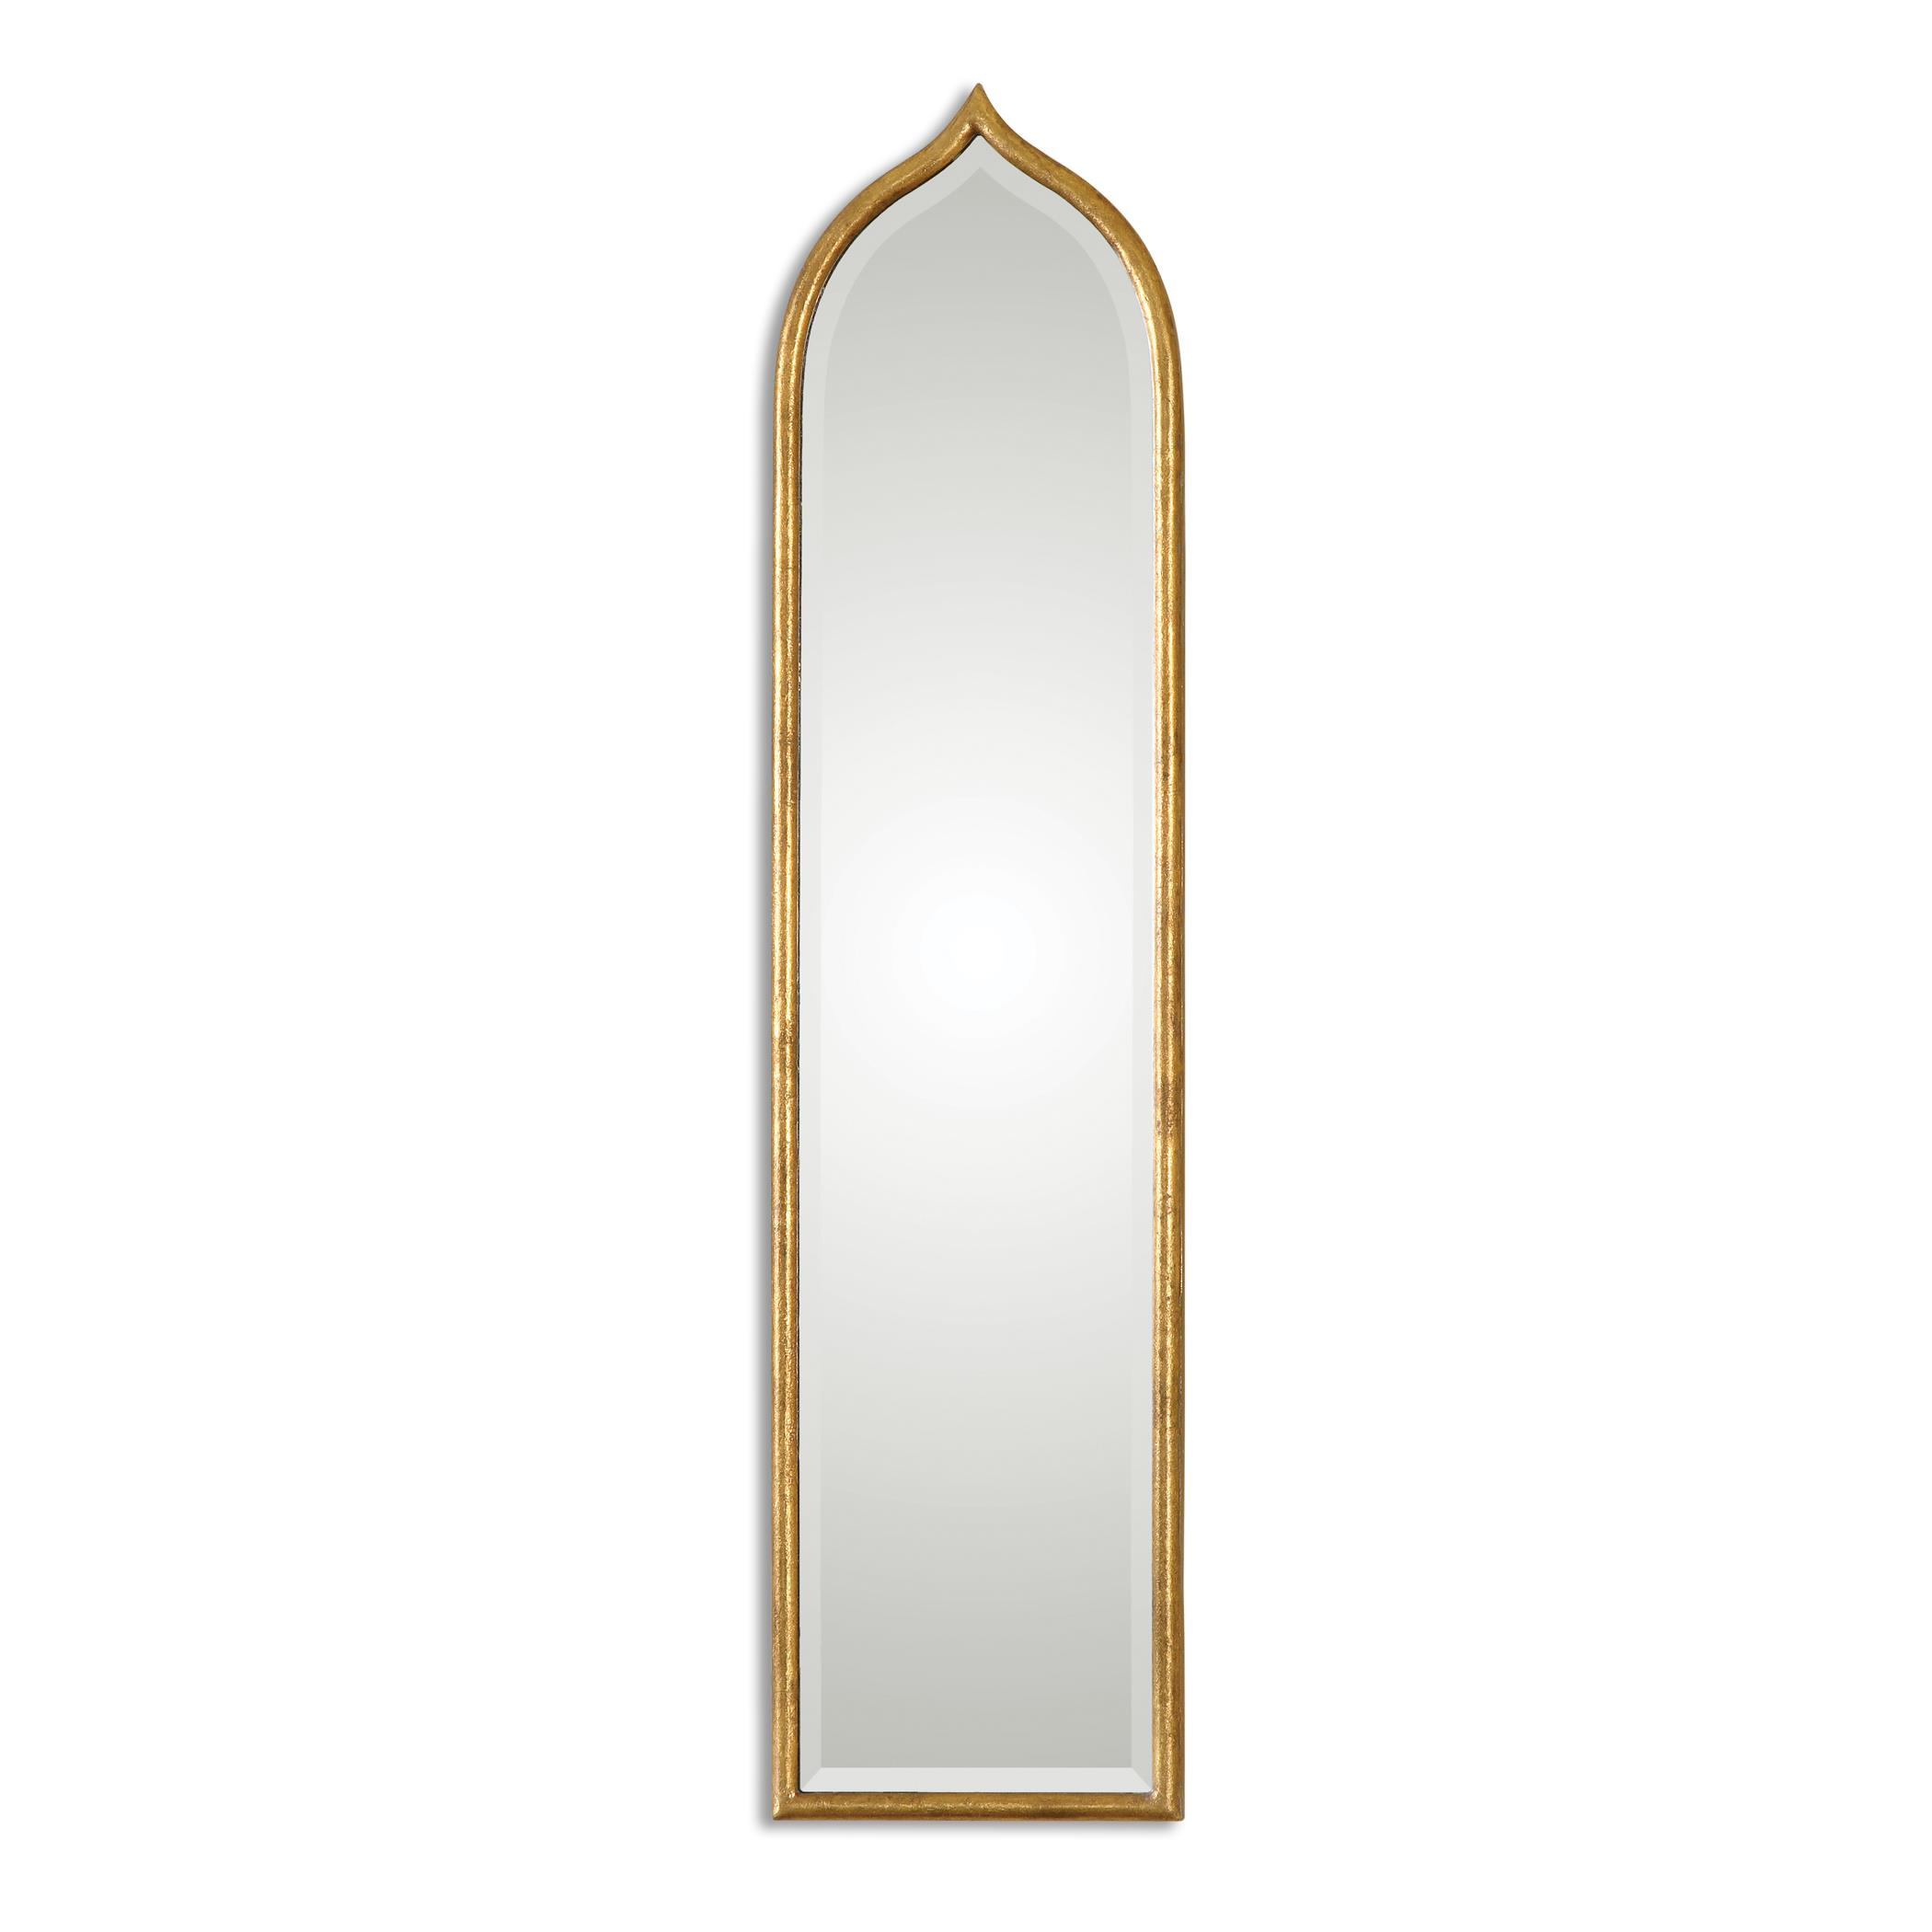 Uttermost Mirrors Fedala Gold Mirror - Item Number: 12910